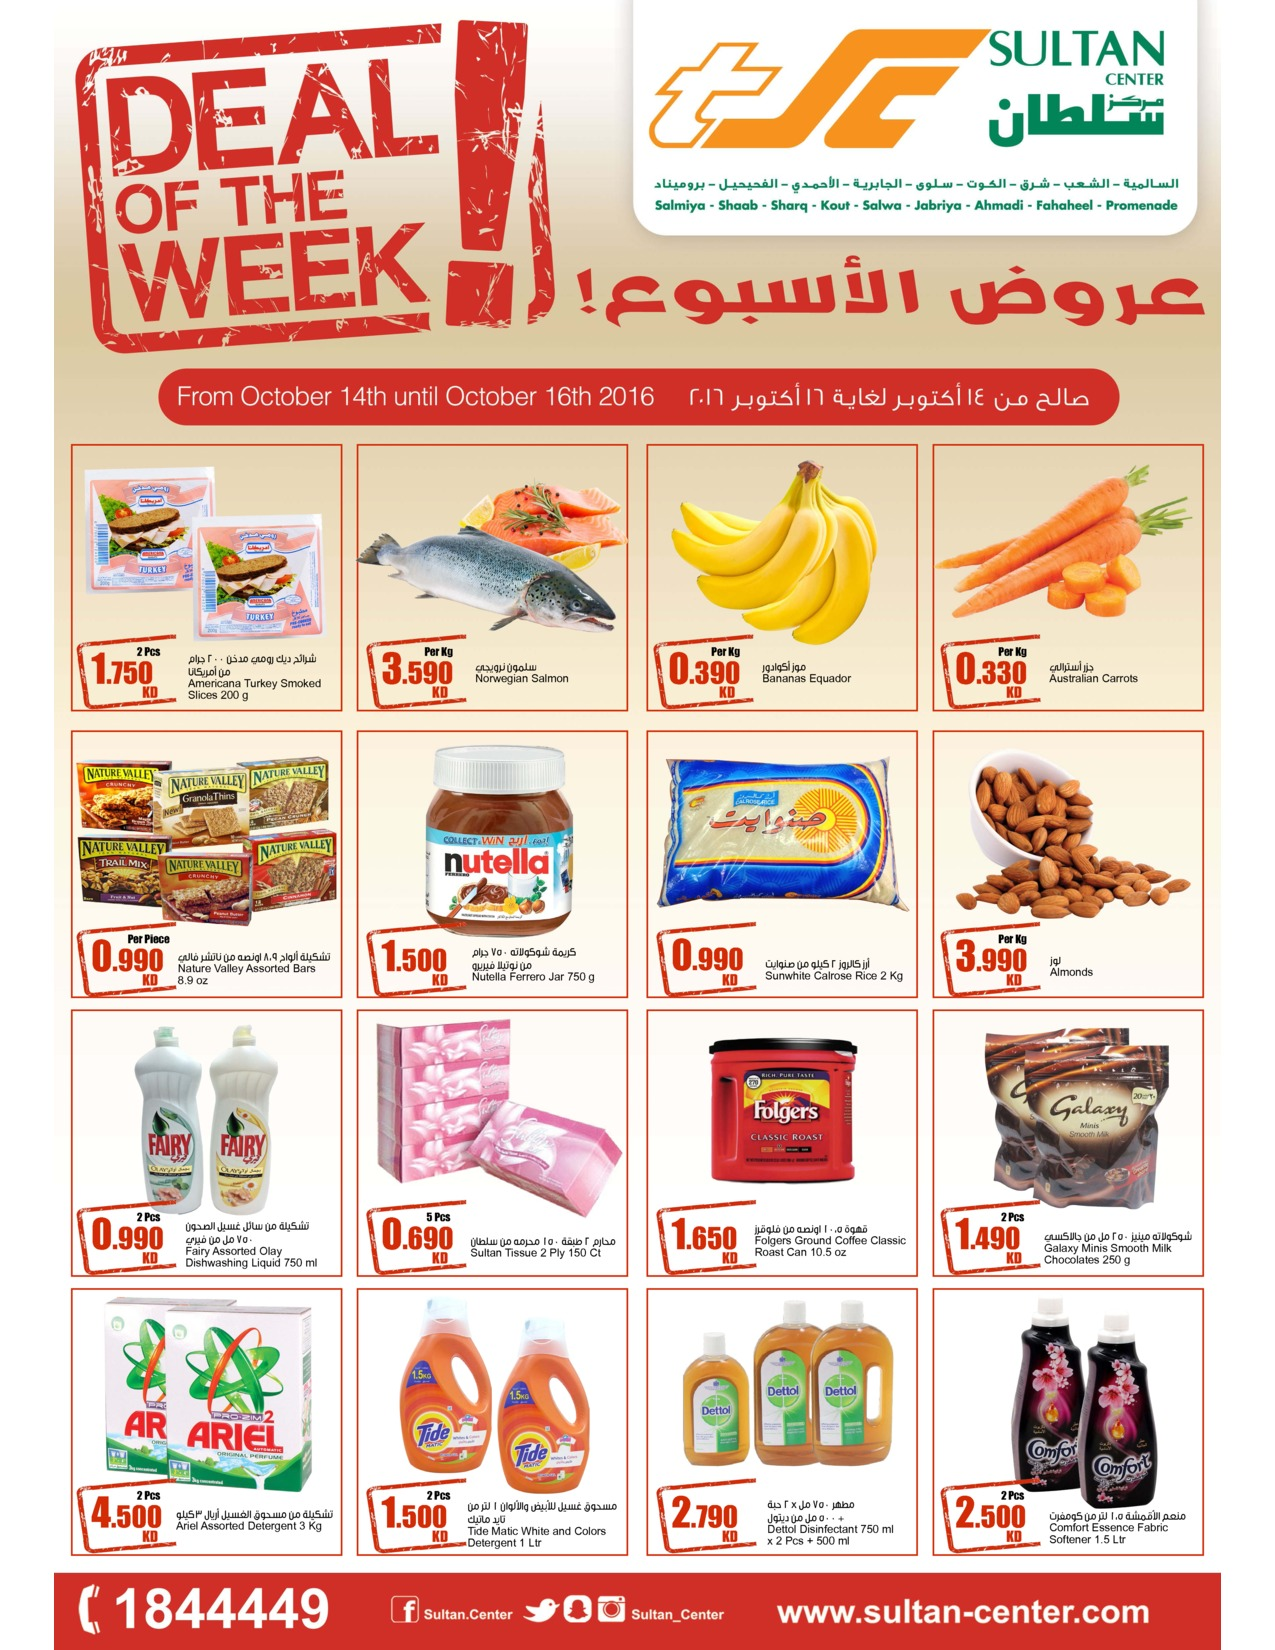 deal-of-the-week-kuwait